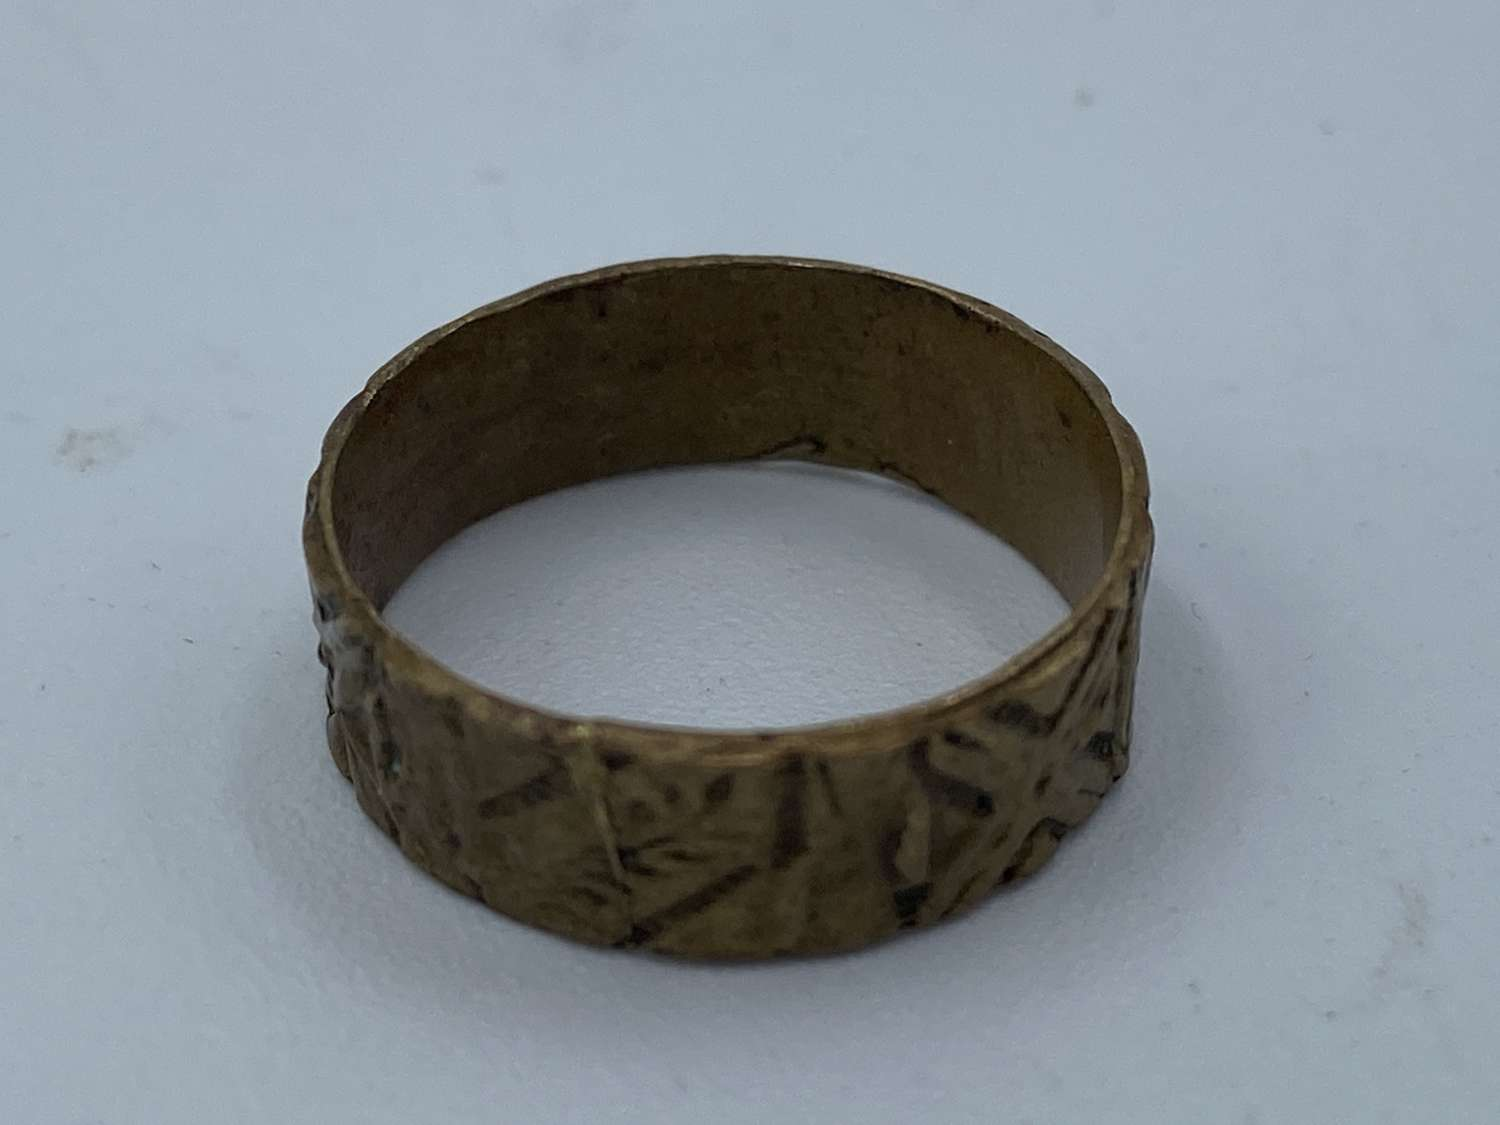 Crudely Made WW1 Copper/ Brass Carved Trench Art Ring Souvenir